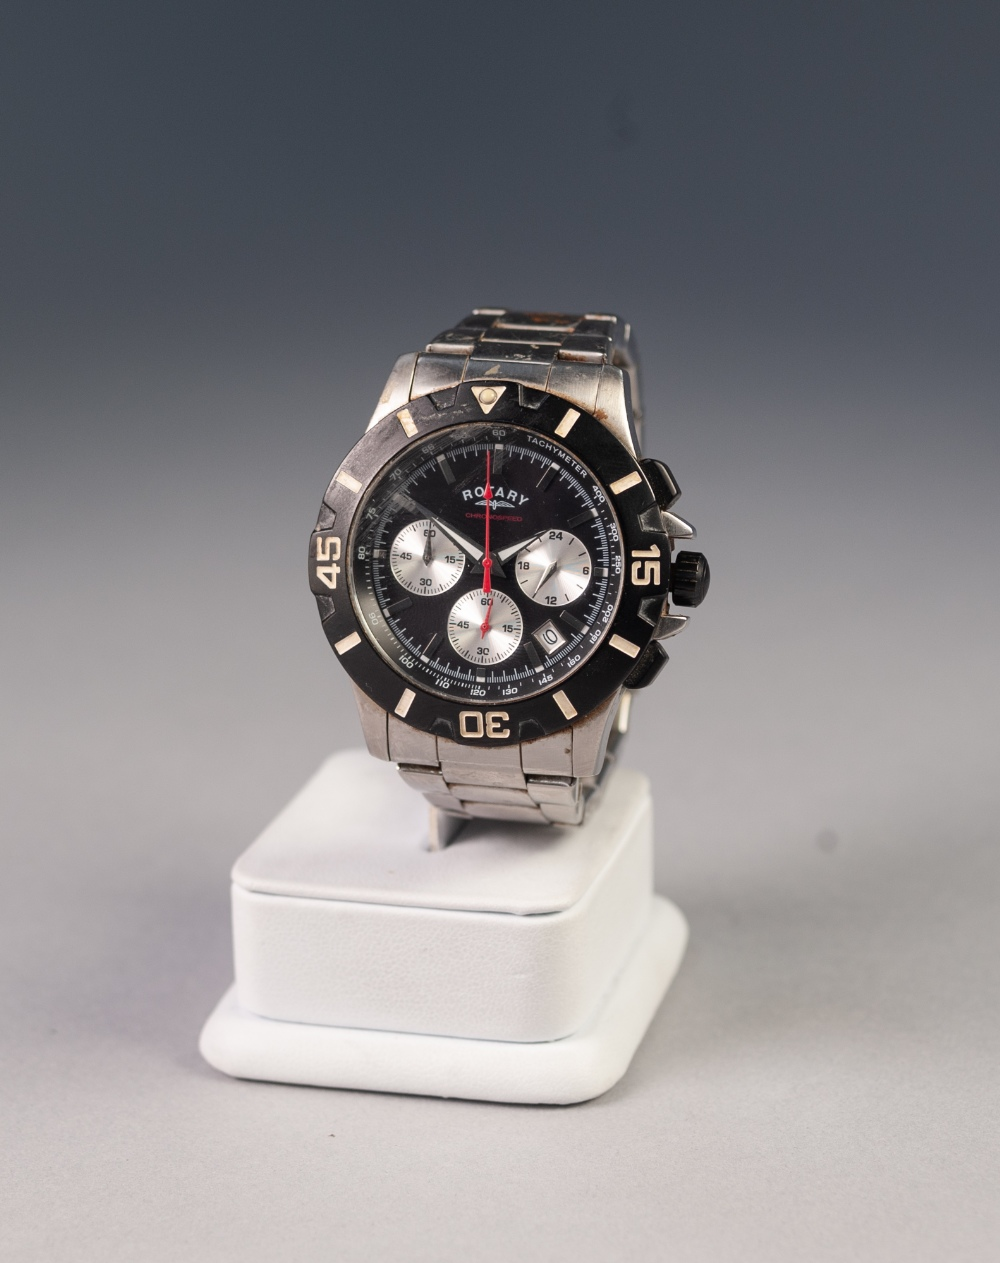 Lot 27 - ROTARY QUARTZ CHRONOSPEED WRIST WATCH, with black dial, with three subsidiary seconds dial and